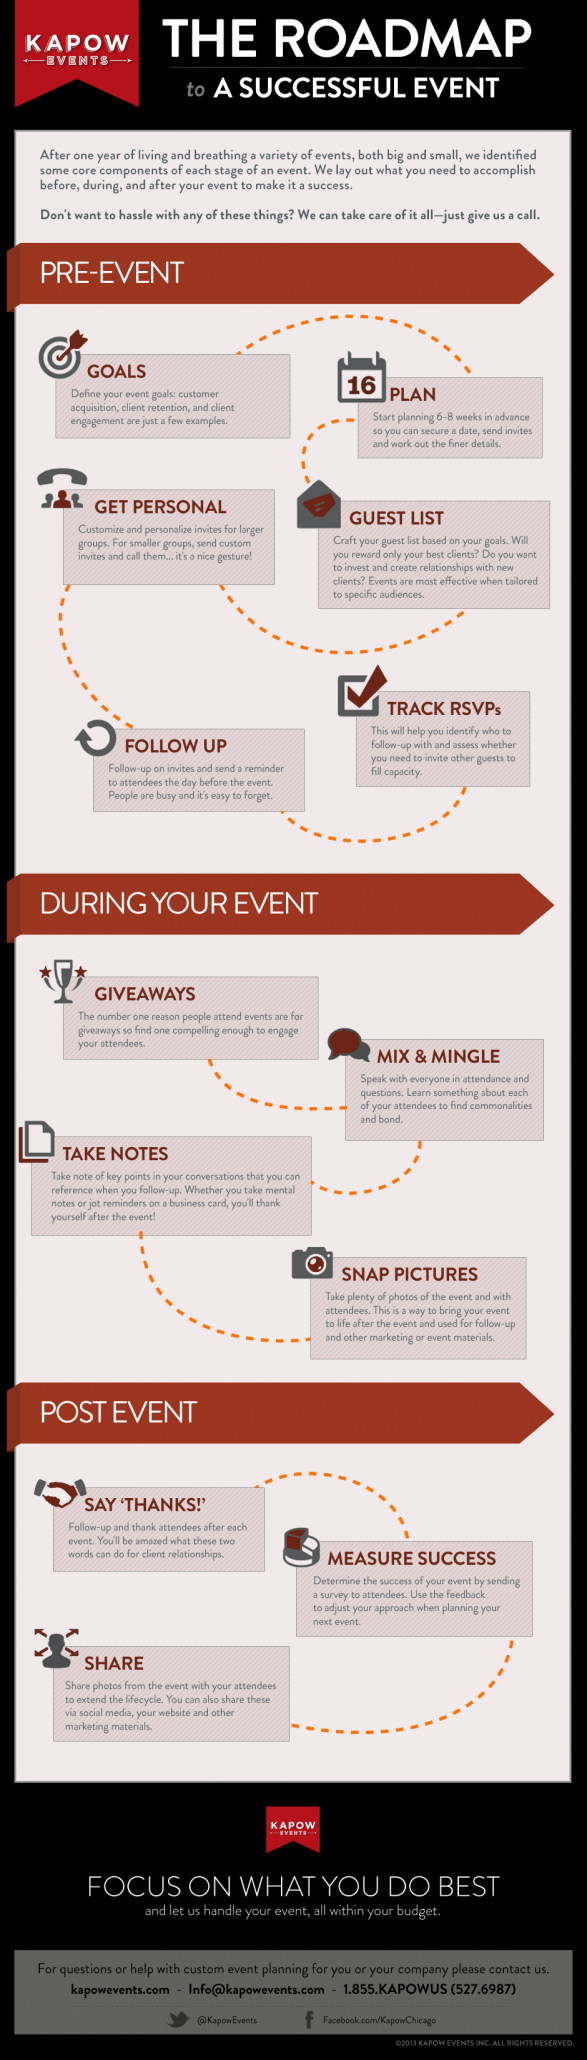 The Roadmap to a Successful Event